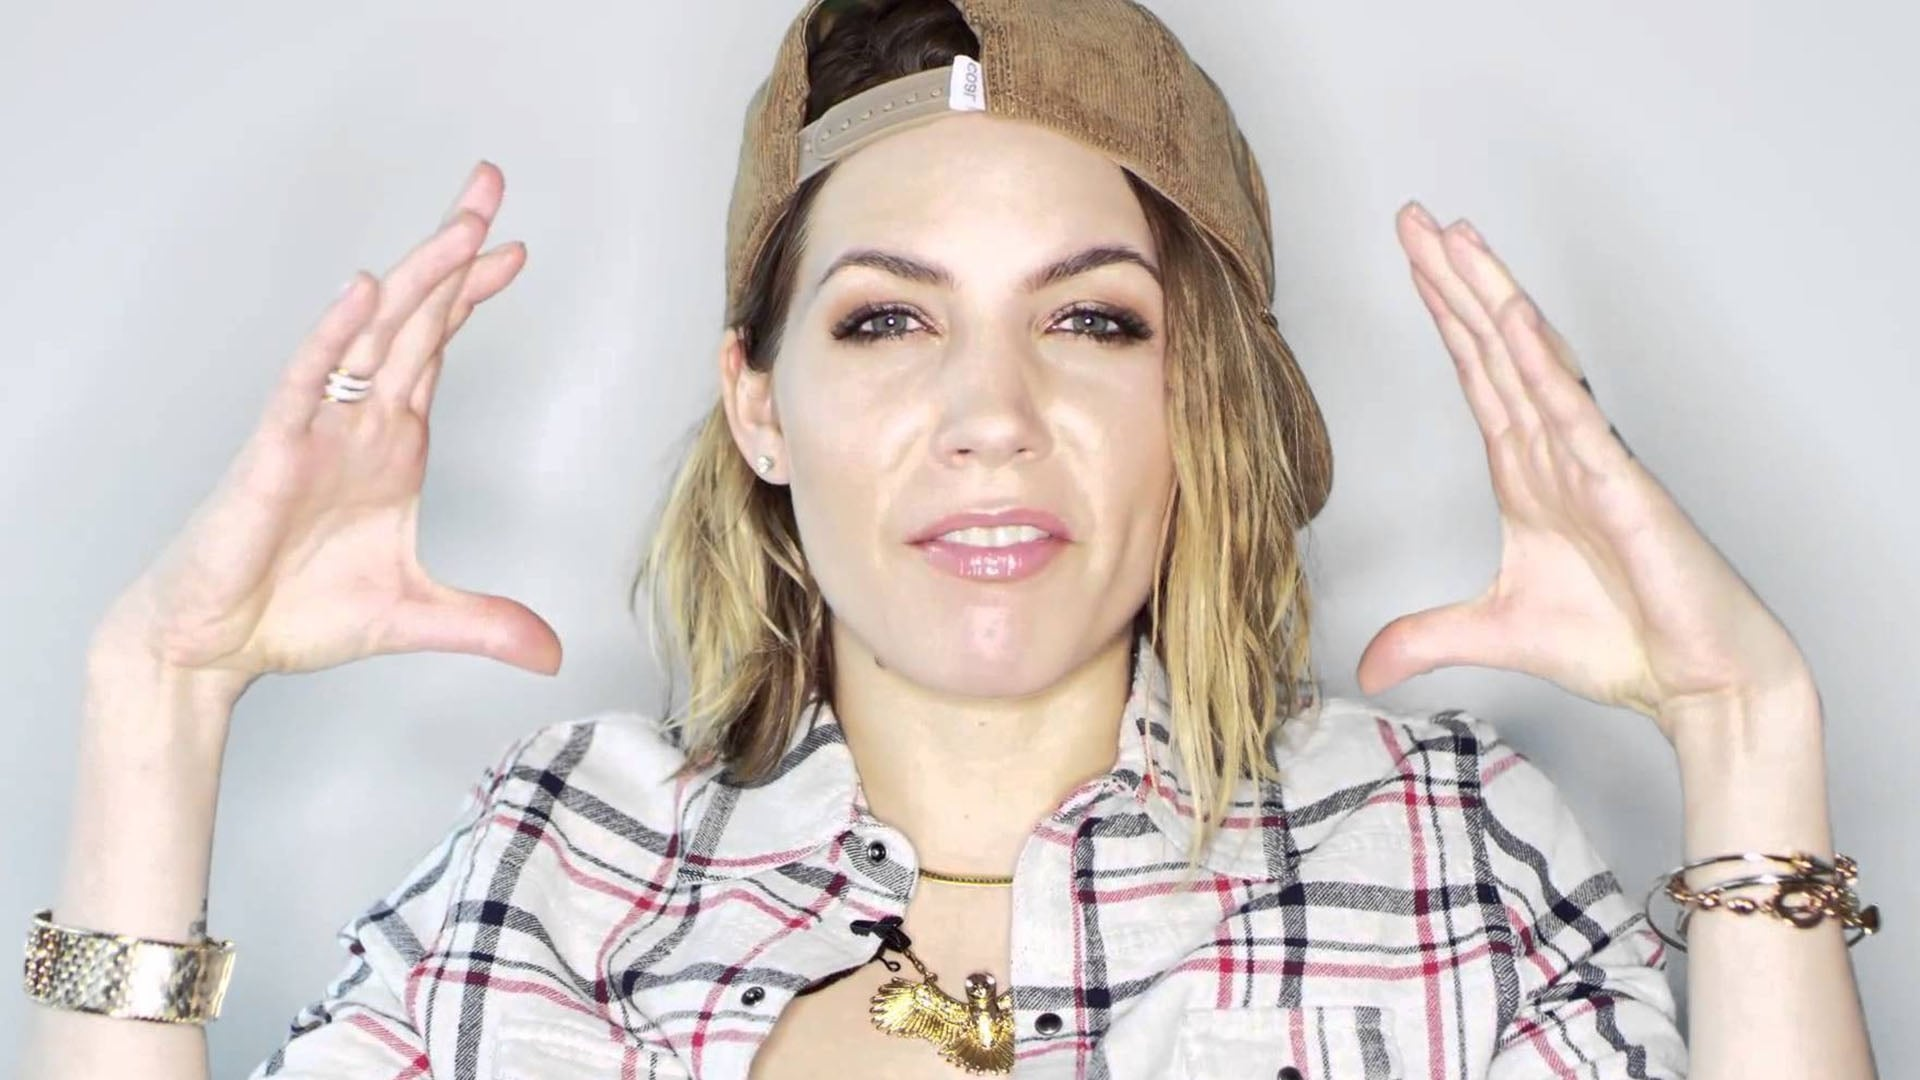 Cool Skylar Grey HD pic for PC